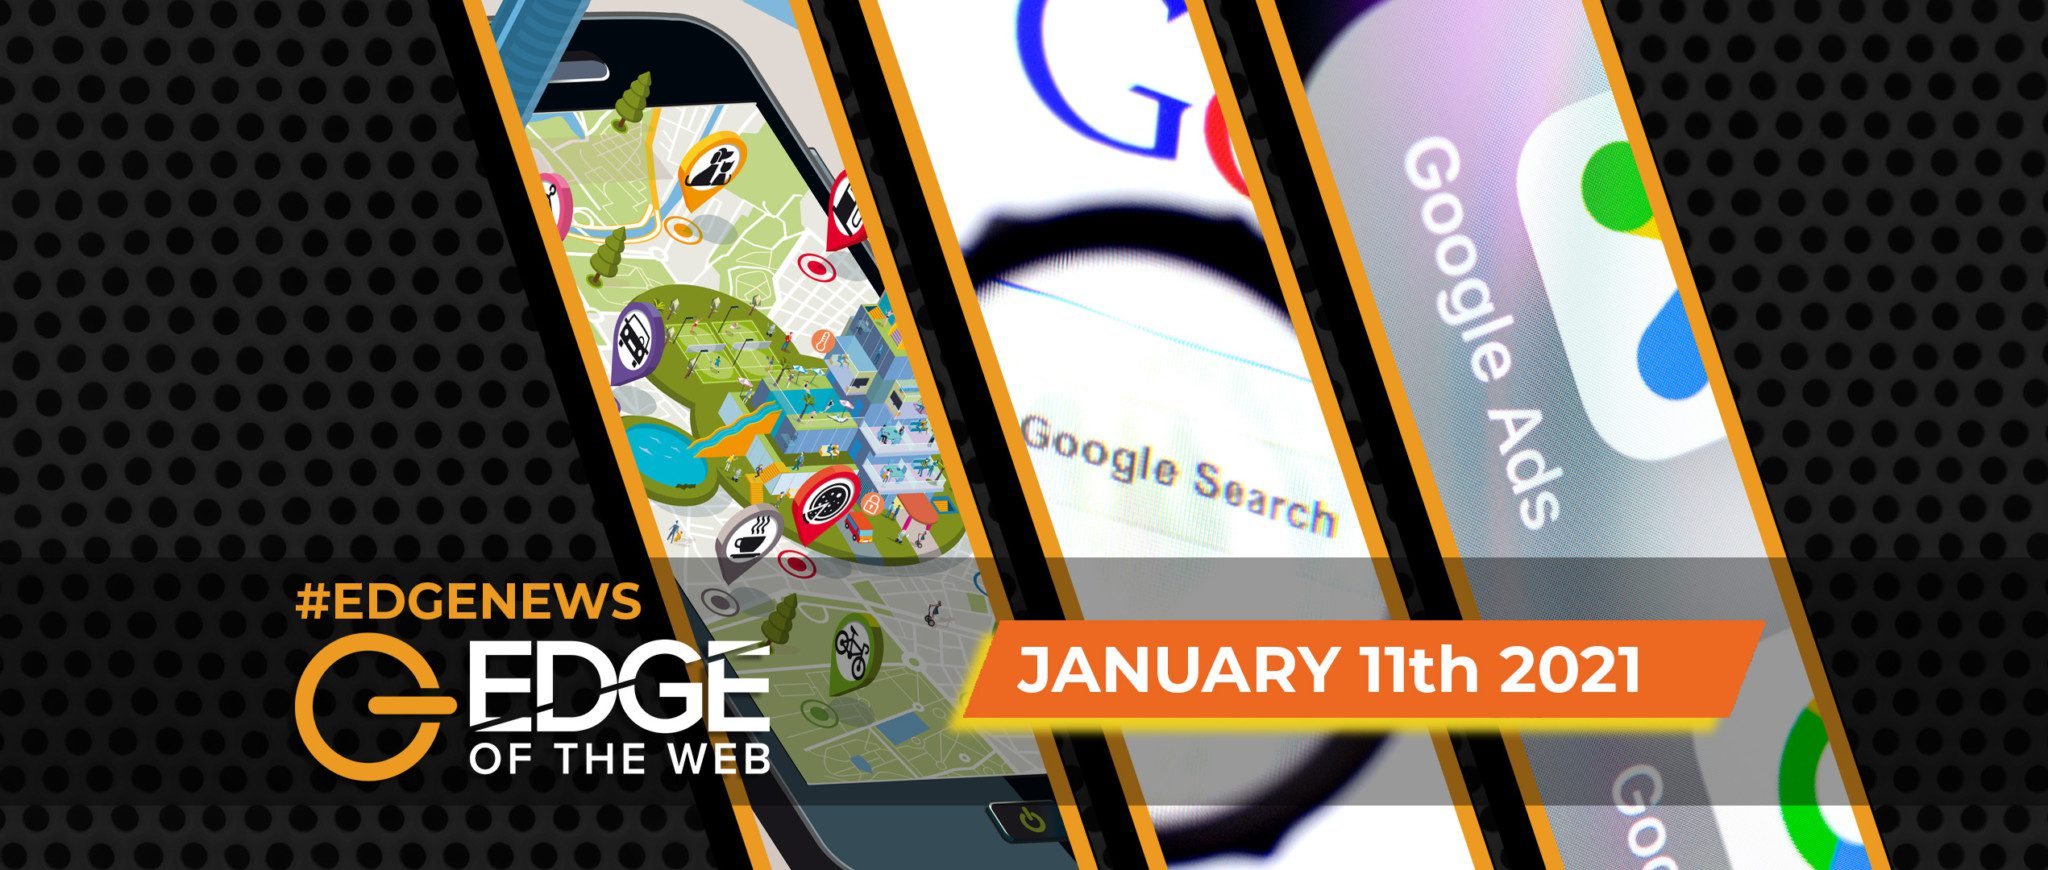 384 | News from the EDGE: Week of January 11, 2021